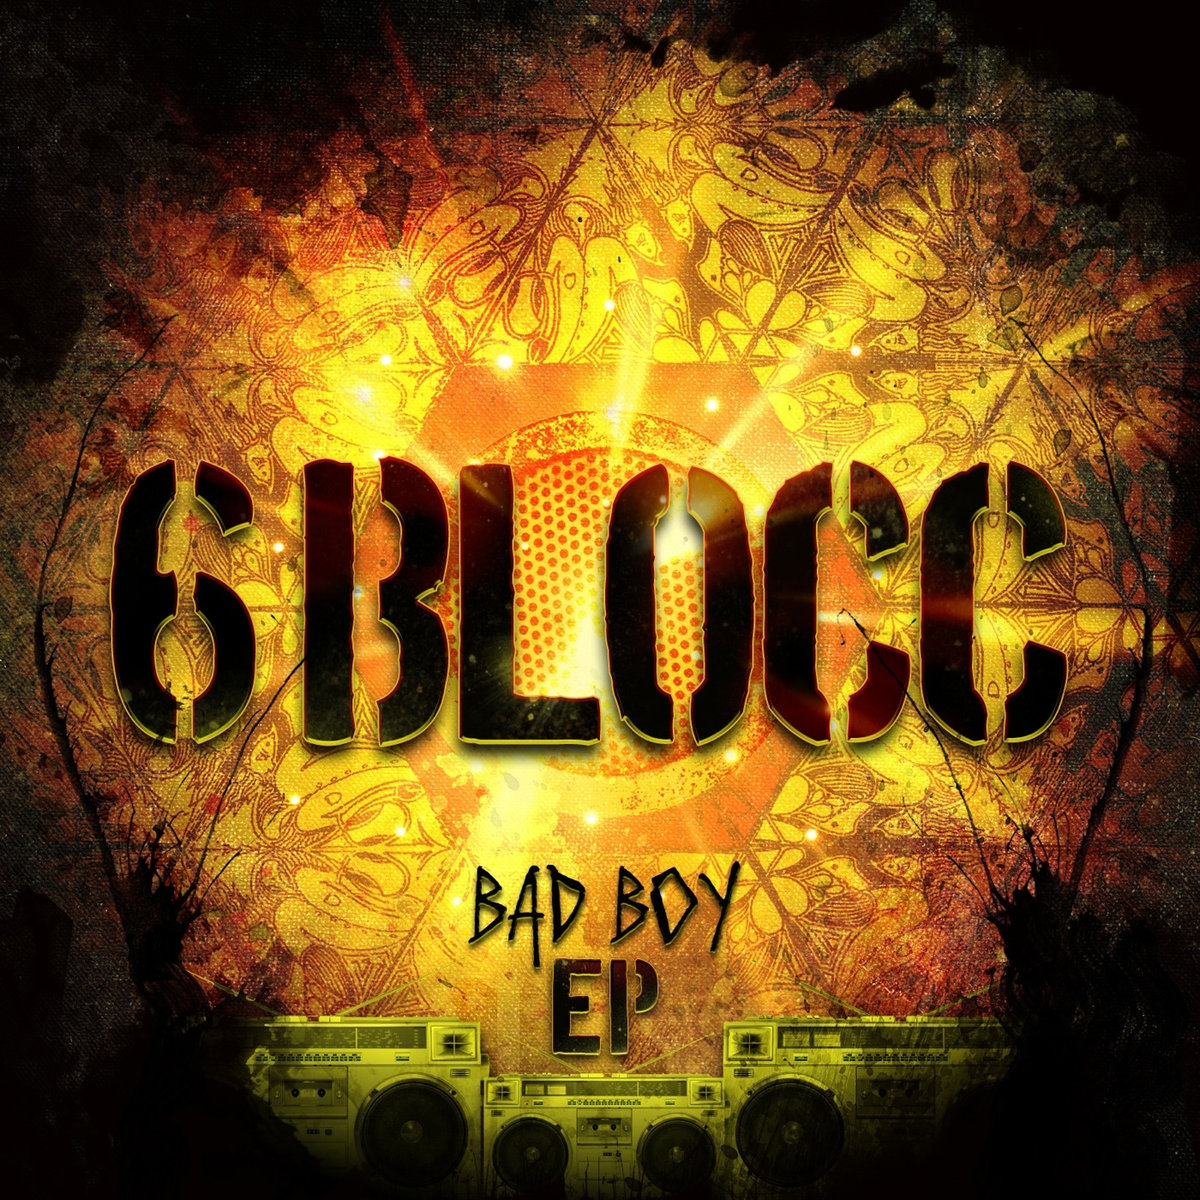 6Blocc - Bad Boy (Mycho Pan Cocoa Remix) @ 'Bad Boy' album (electronic, dubstep)